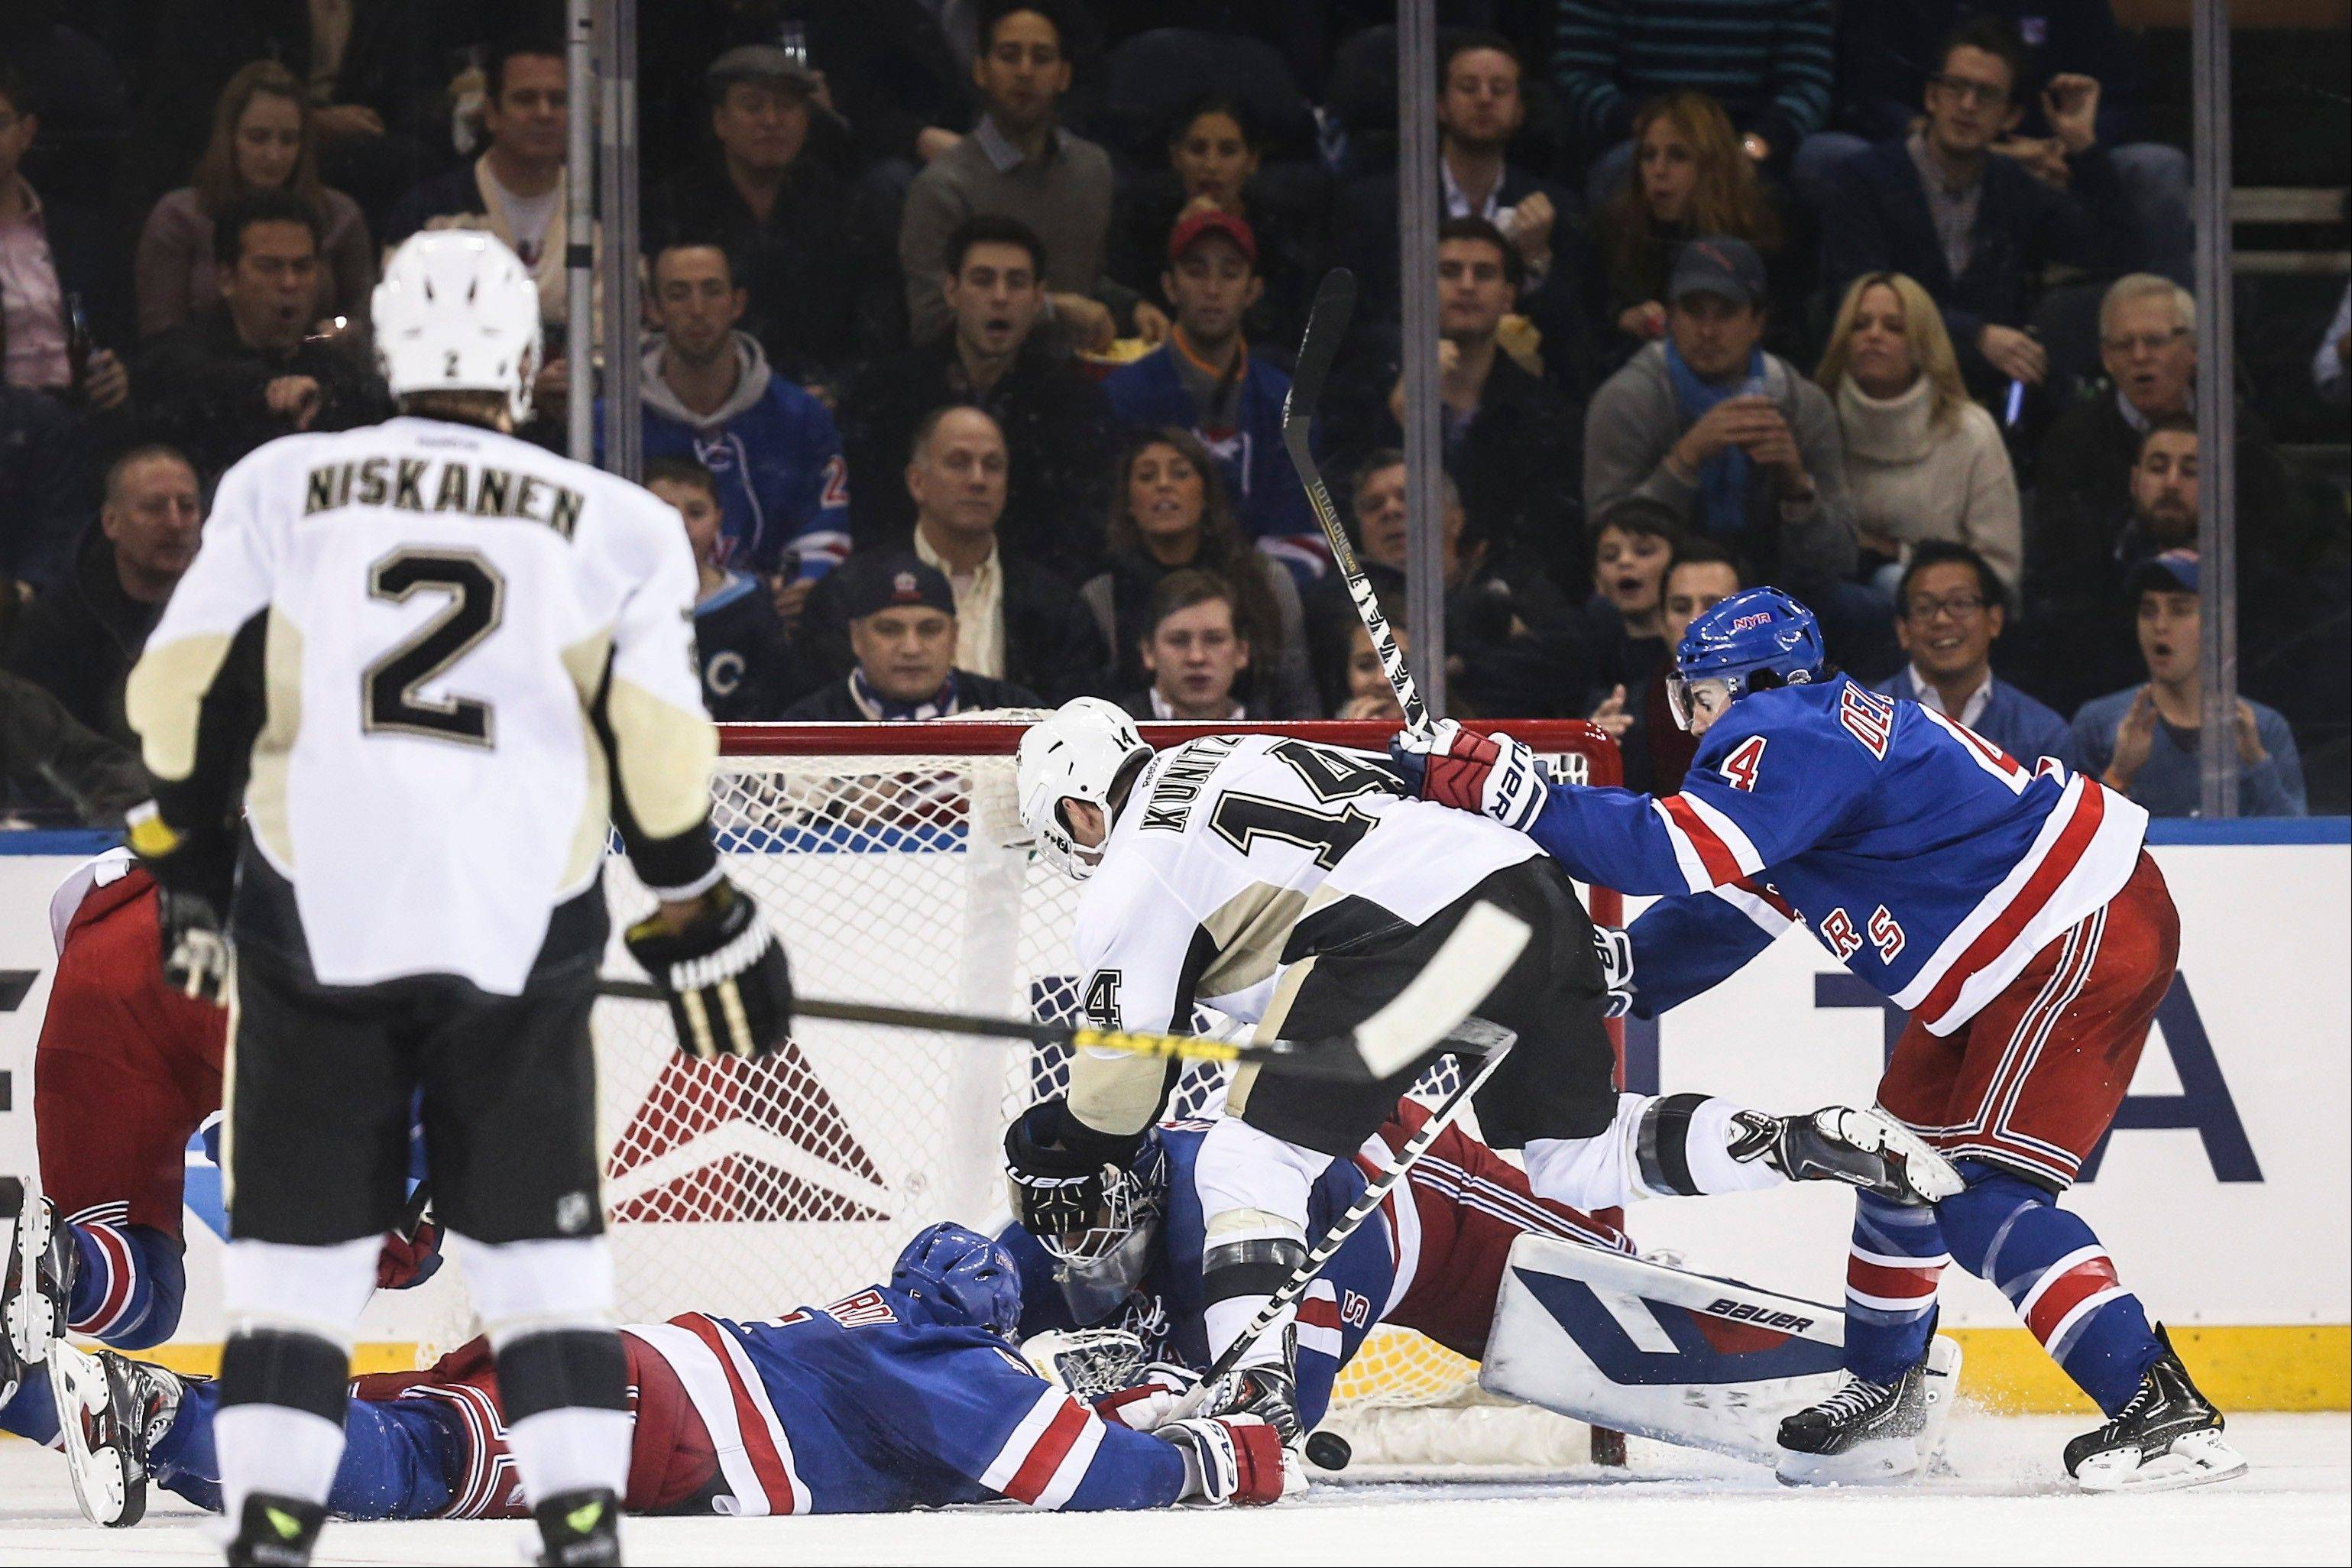 Pittsburgh Penguins left wing Chris Kunitz (14) scores against New York Rangers goalie Henrik Lundqvist (30) through Rangers defensemen Dan Girardi (5) and Michael Del Zotto (4) during the second period of their NHL hockey game on Wednesday in New York.